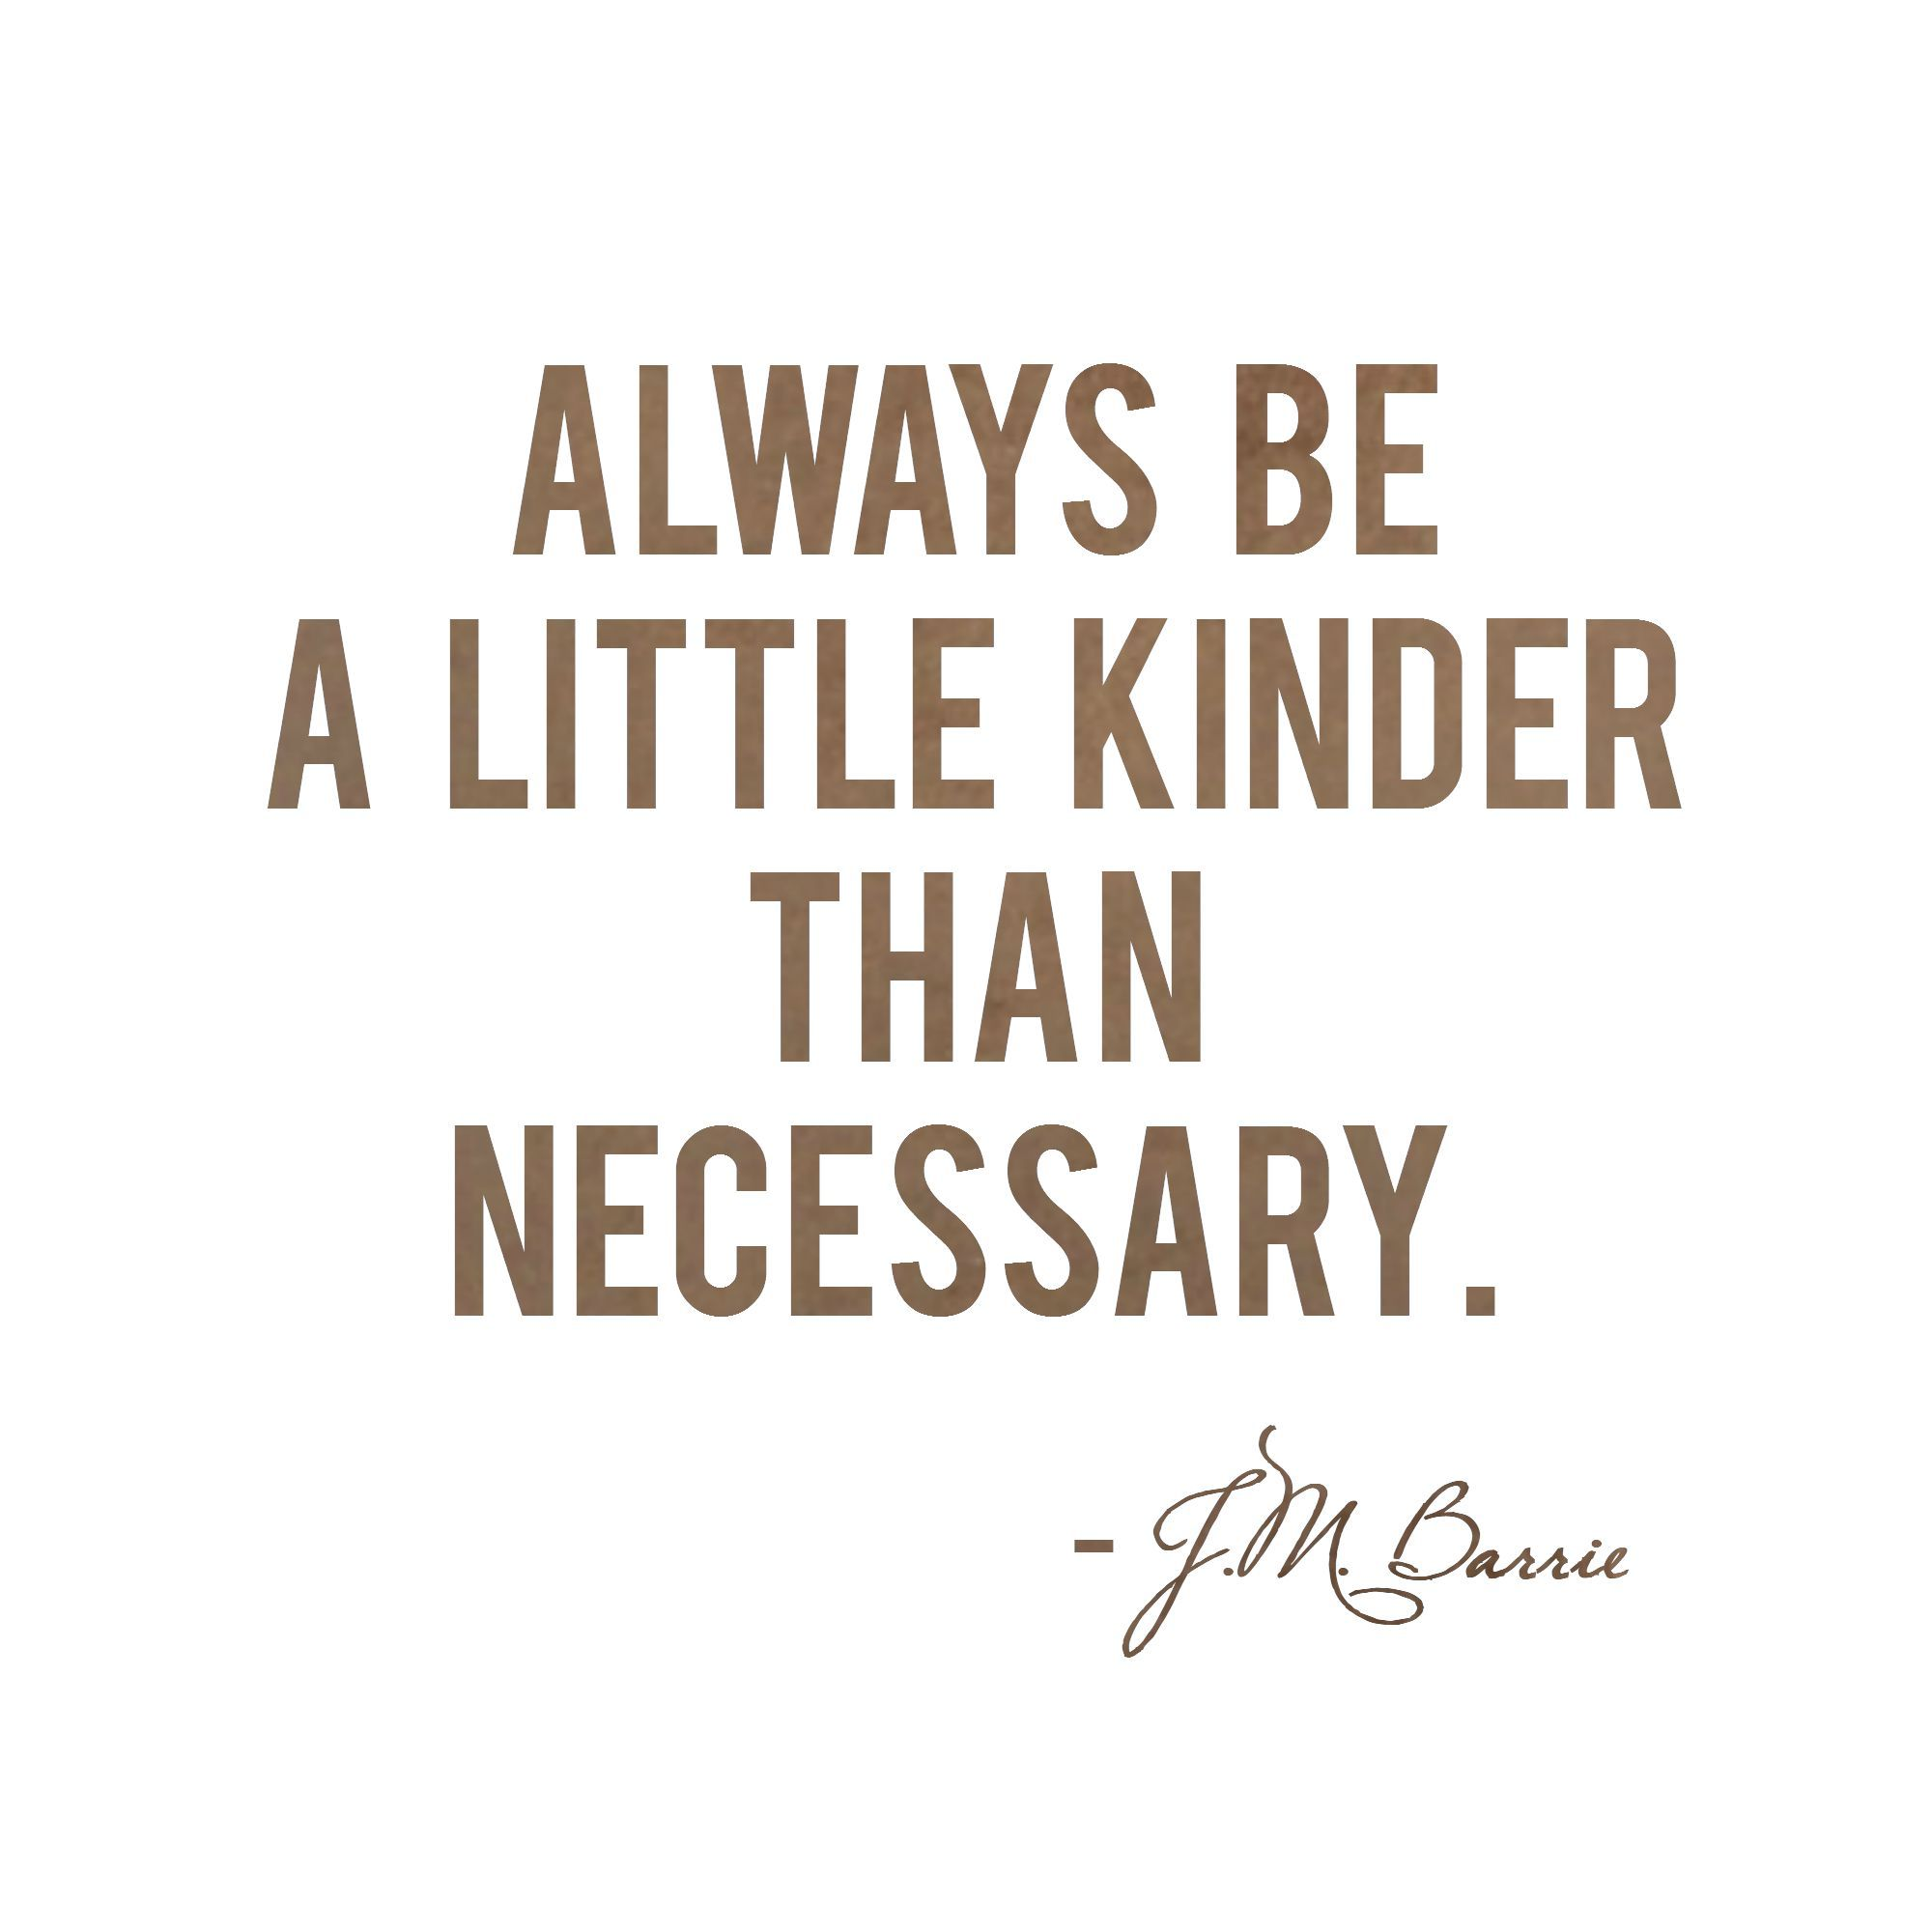 J M Barrie Quote Always Be Kinder Than Necessary Font Paper